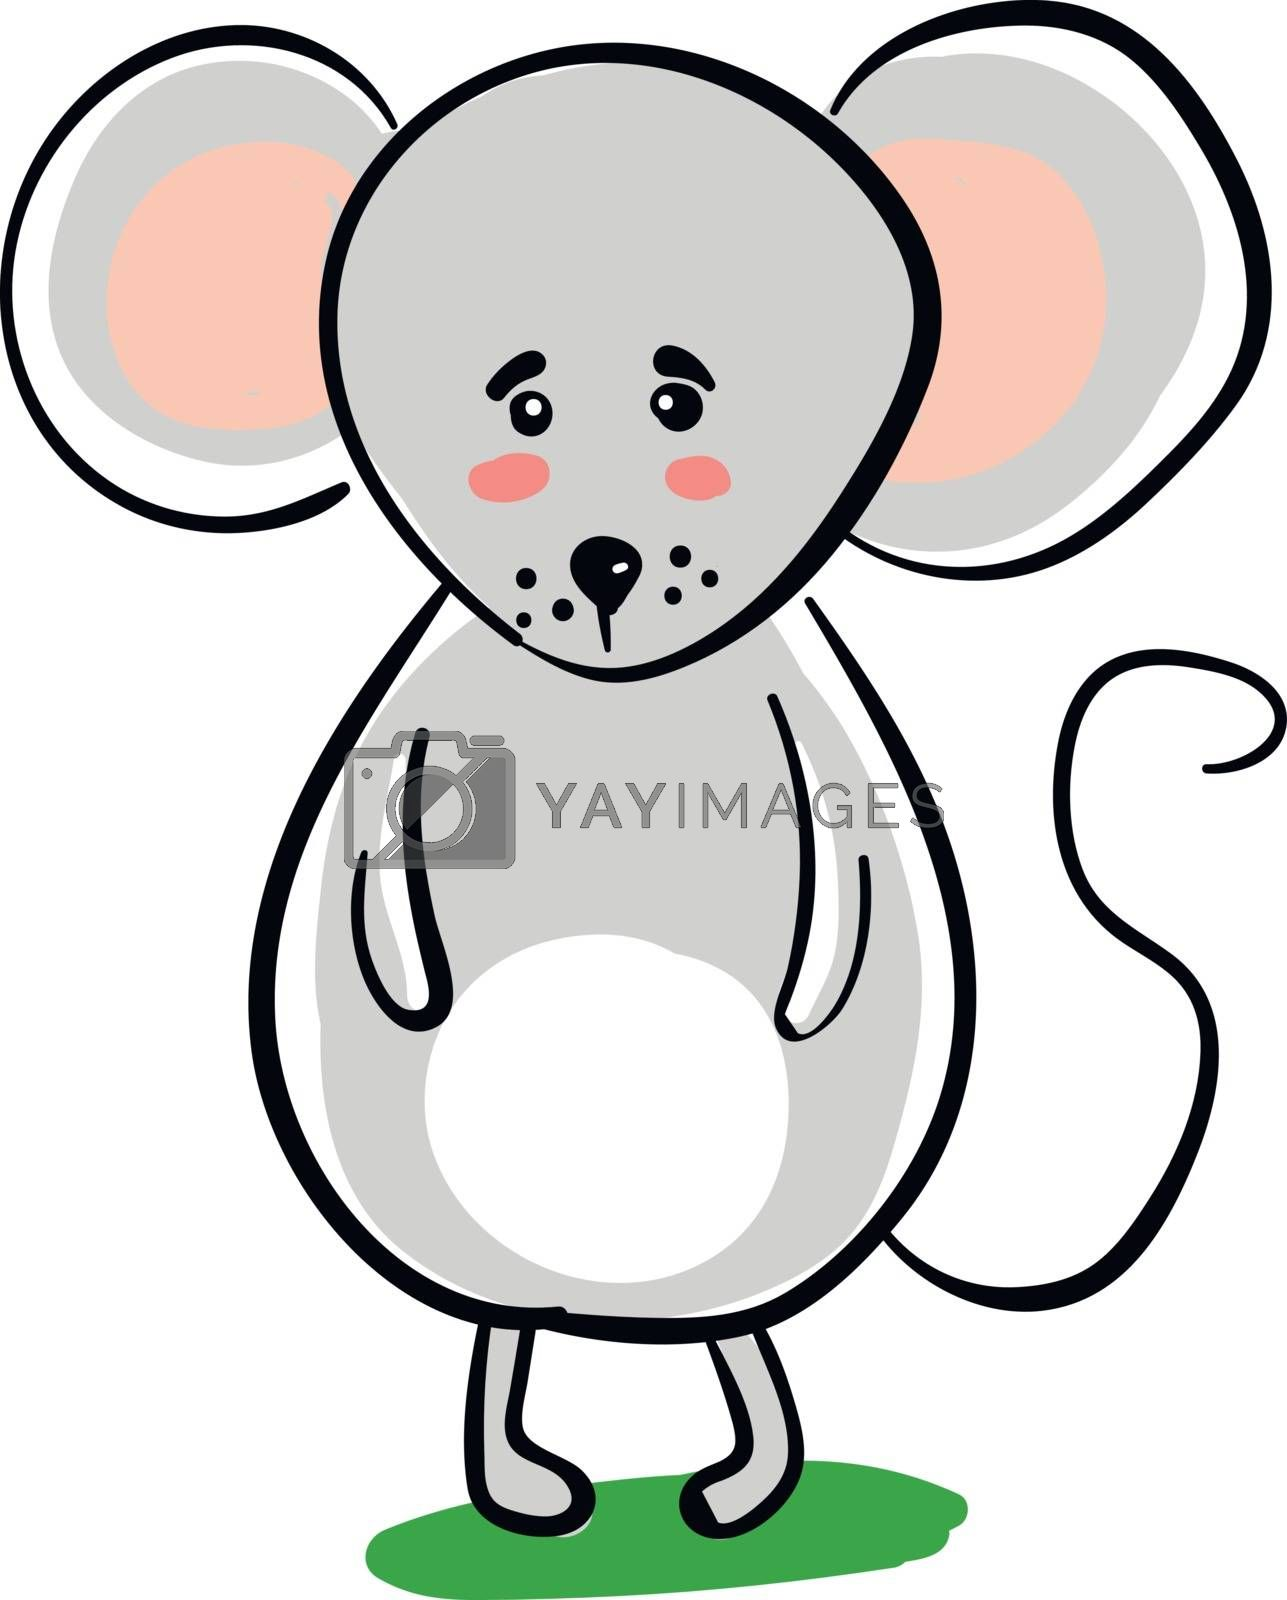 Royalty free image of Clipart of a sad mouse set on isolated white background vector o by Morphart